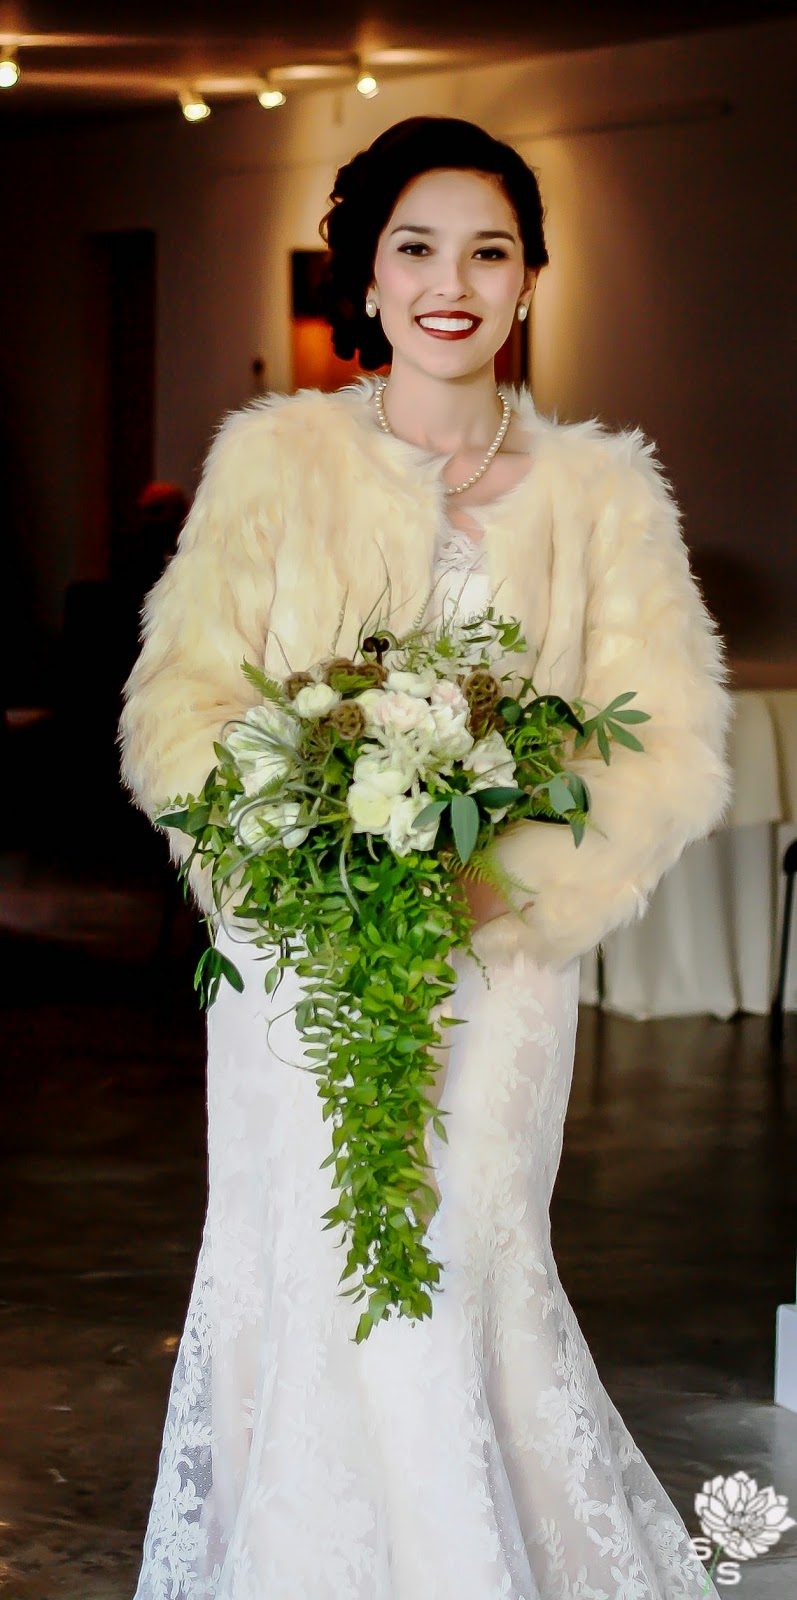 The Roundhouse Wedding - Beacon, NY - Hudson Valley Wedding - Bridal Bouquet - Wedding Flowers - Splendid Stems Floral Designs